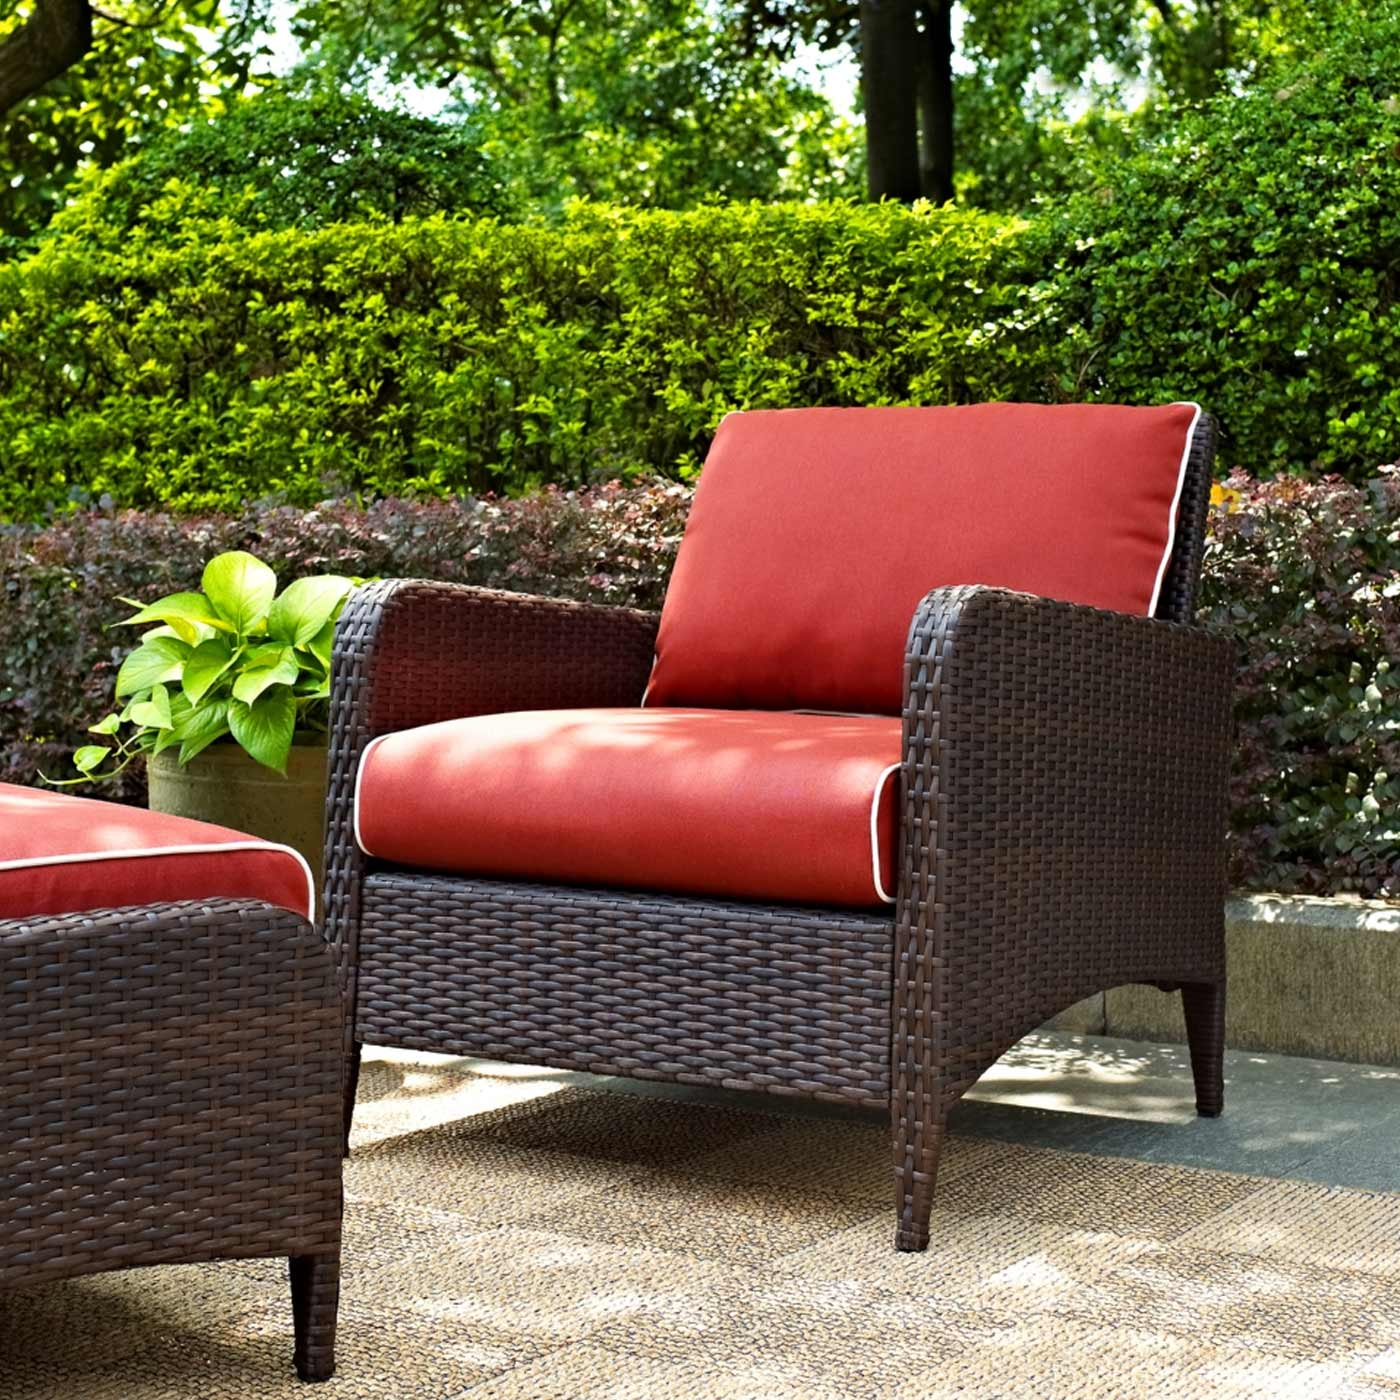 crosley kiawah chair and ottoman outdoor wicker set with sangria cushions free shipping. Black Bedroom Furniture Sets. Home Design Ideas